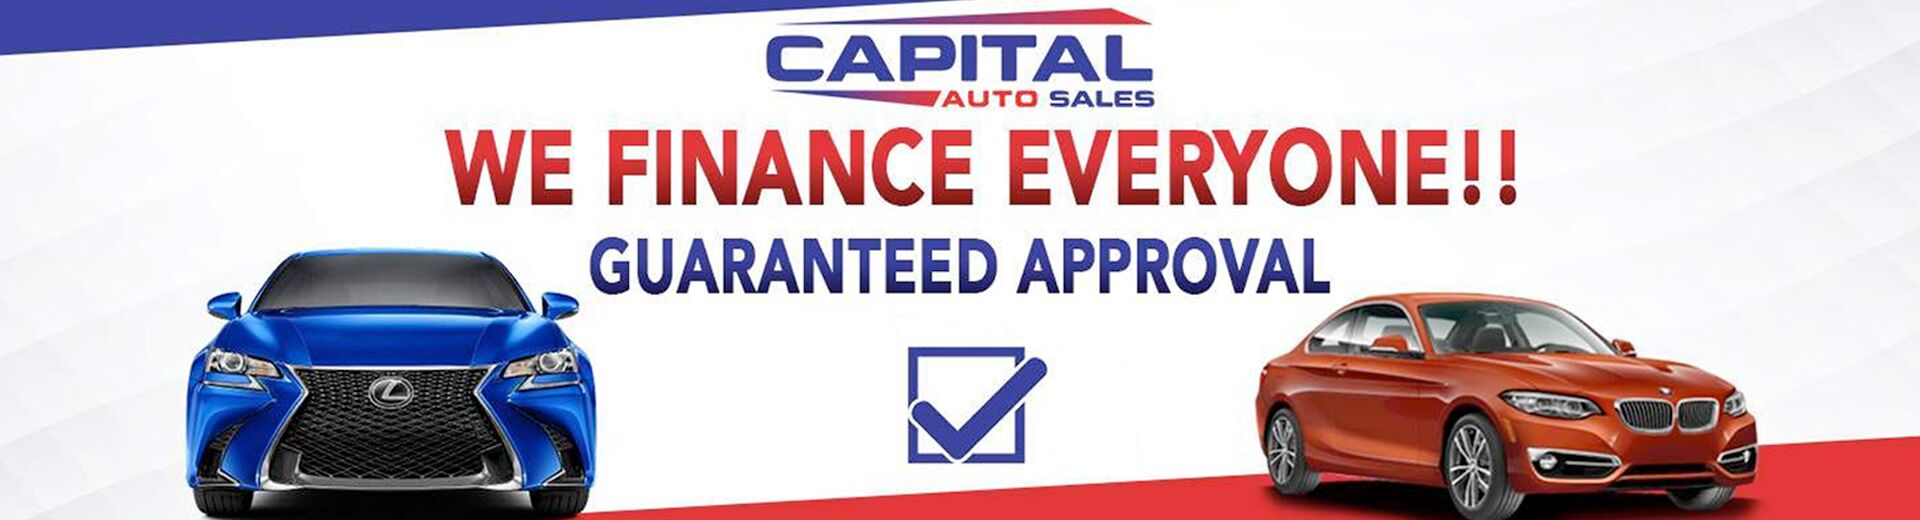 Virginia Auto Sales Tax >> Pre Owned Dealership Chantilly Va Used Cars Capital Auto Sales